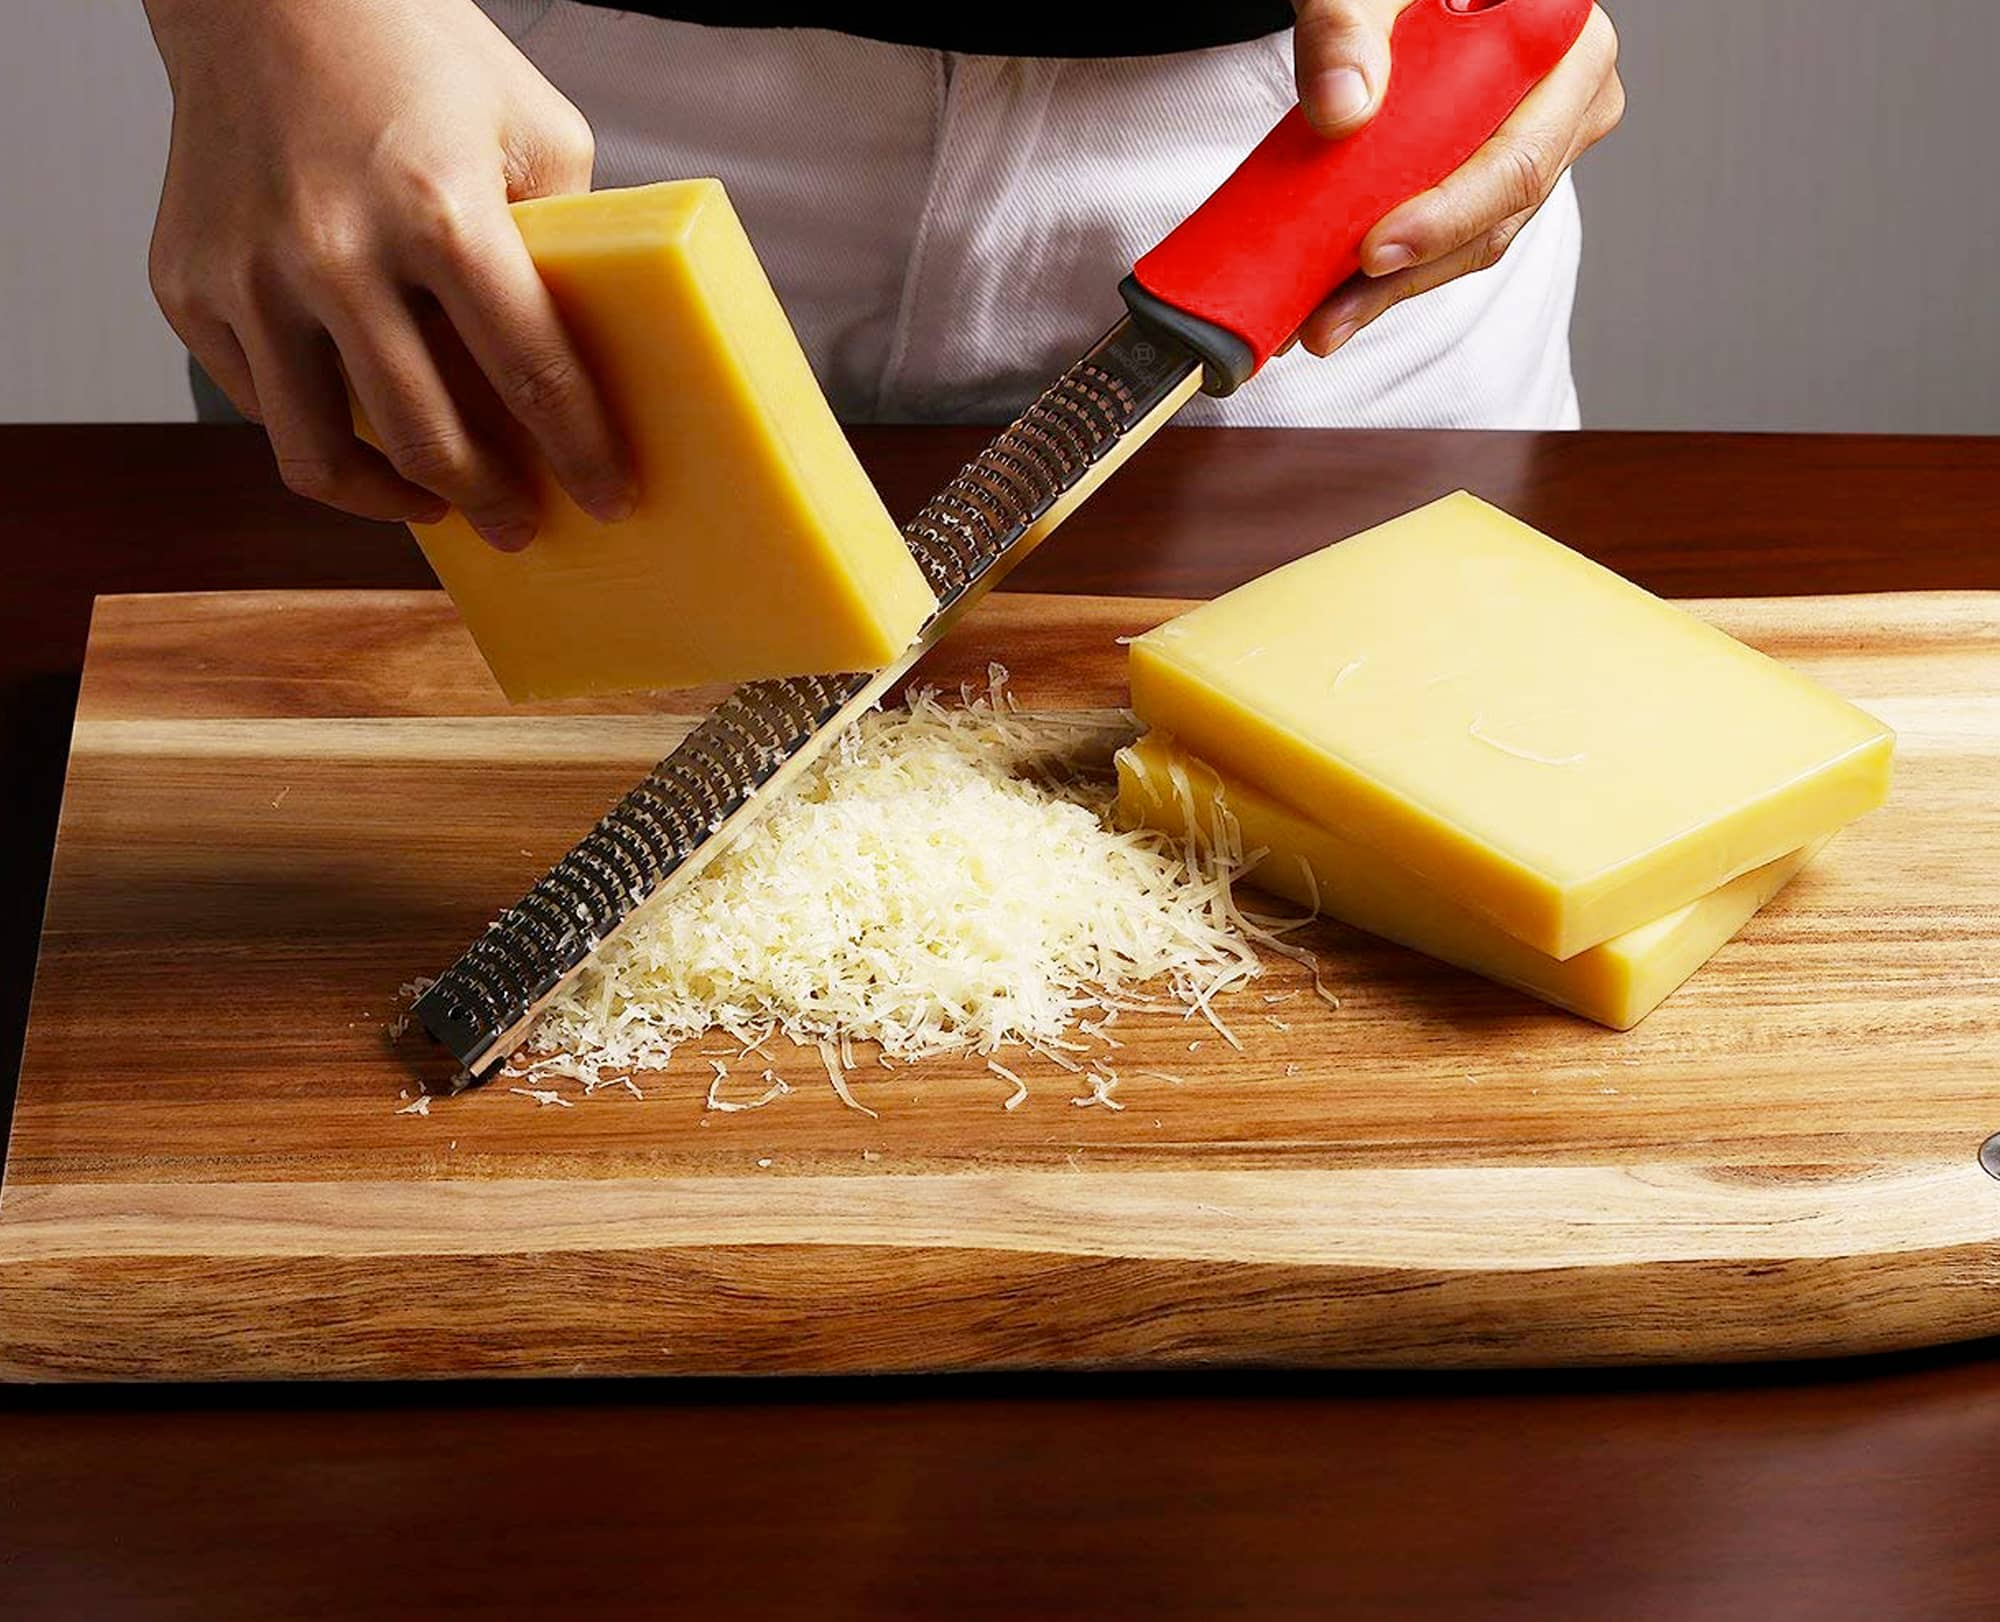 Man is using Benchusch Classic Red Cheese grater to zest the parmesan cheese on the wood chopping board